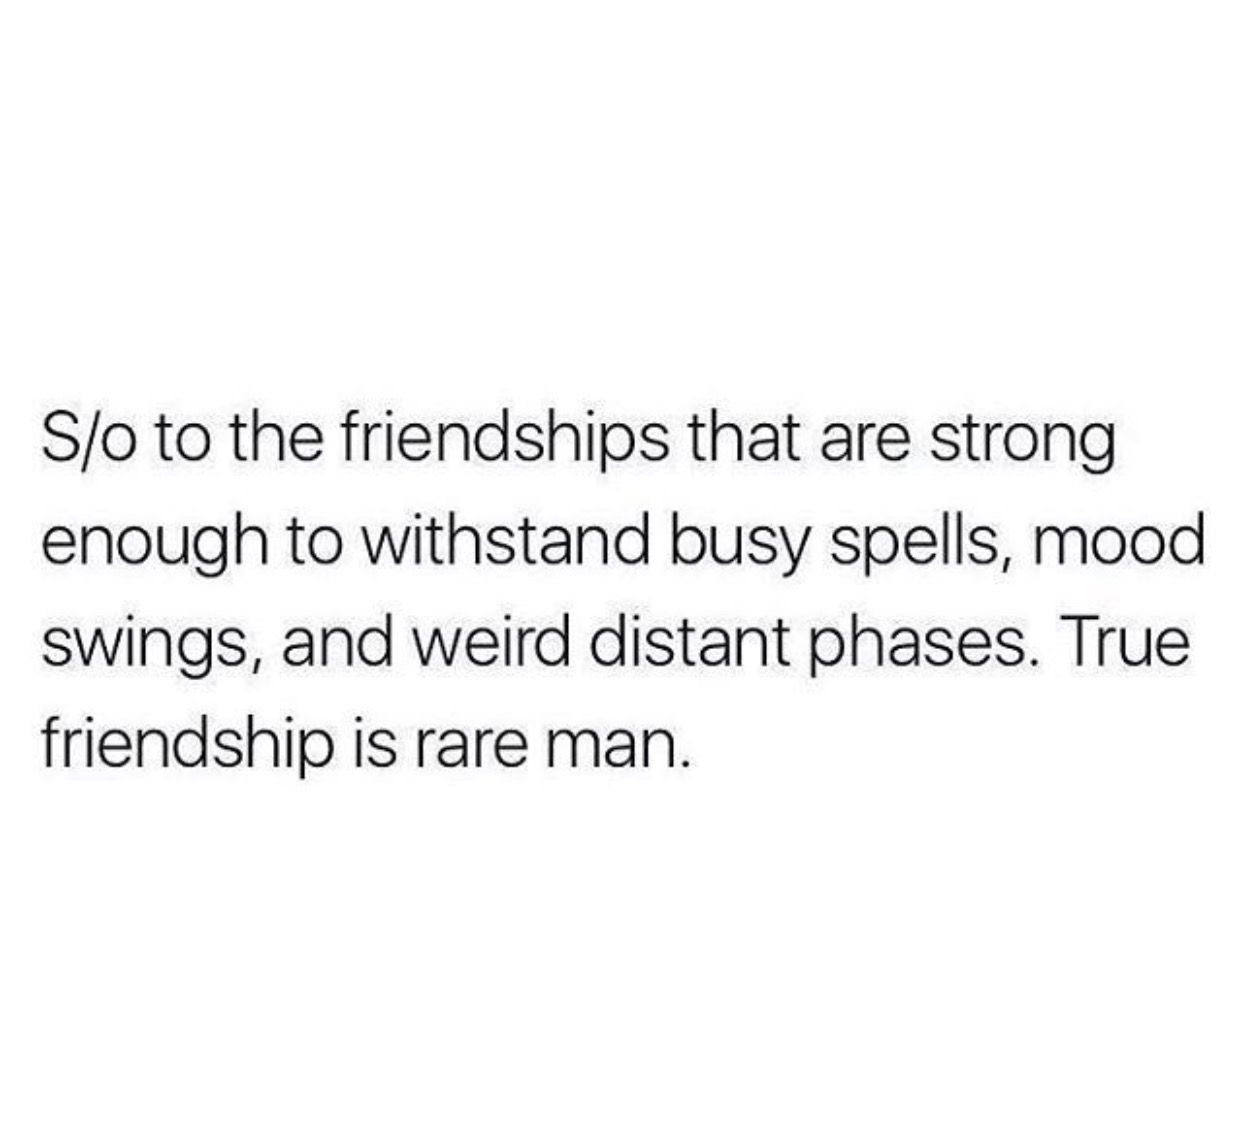 Quote About True Friendship Rare Friendships.when It's True It's Forever Word Up